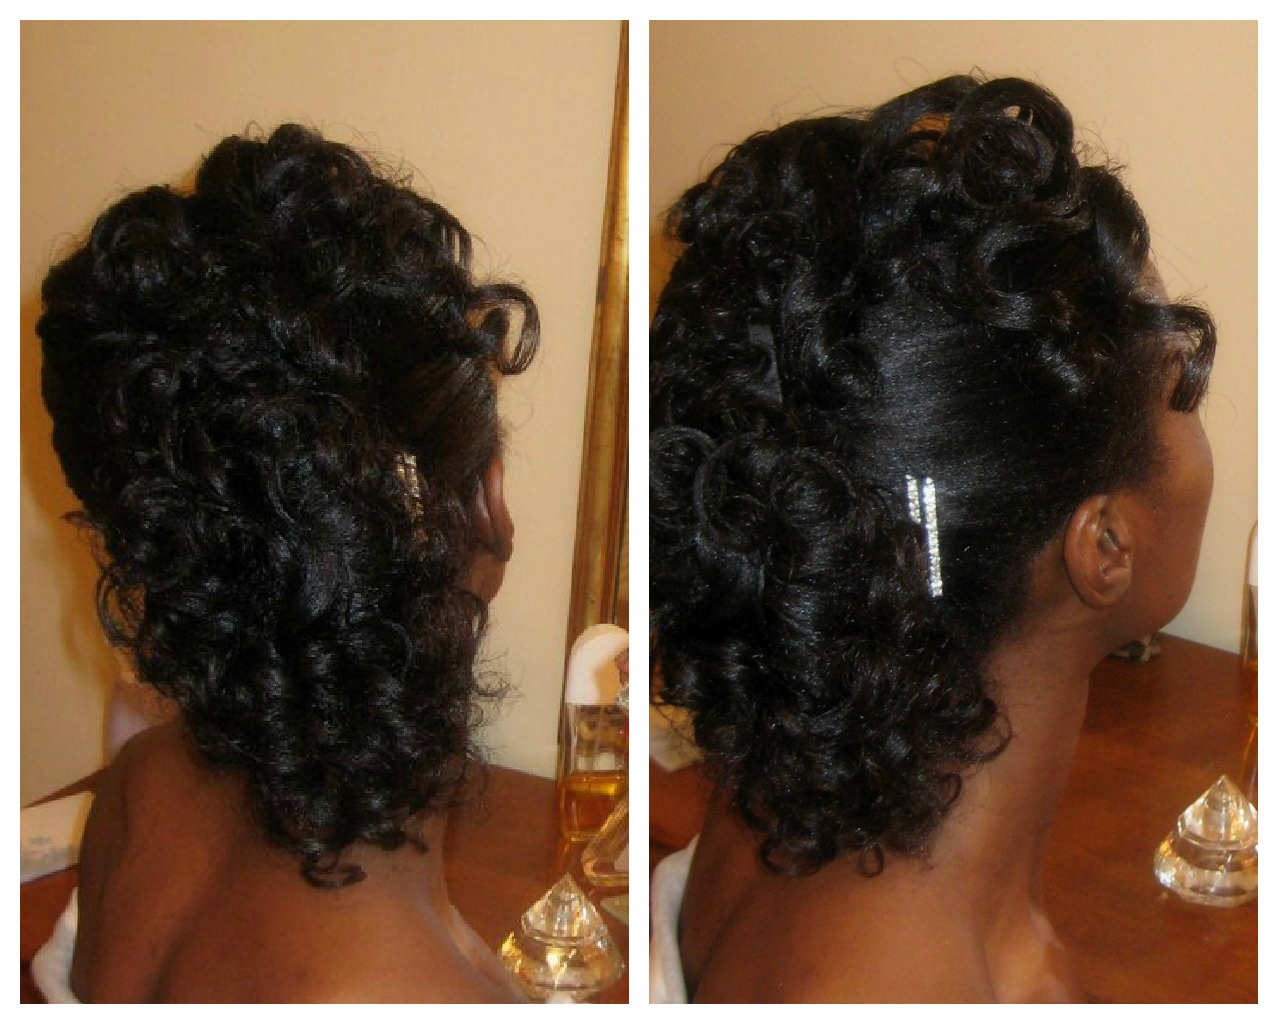 Braided Mohawk With Curly Weave For Kids Luyando wearing a curly faux-